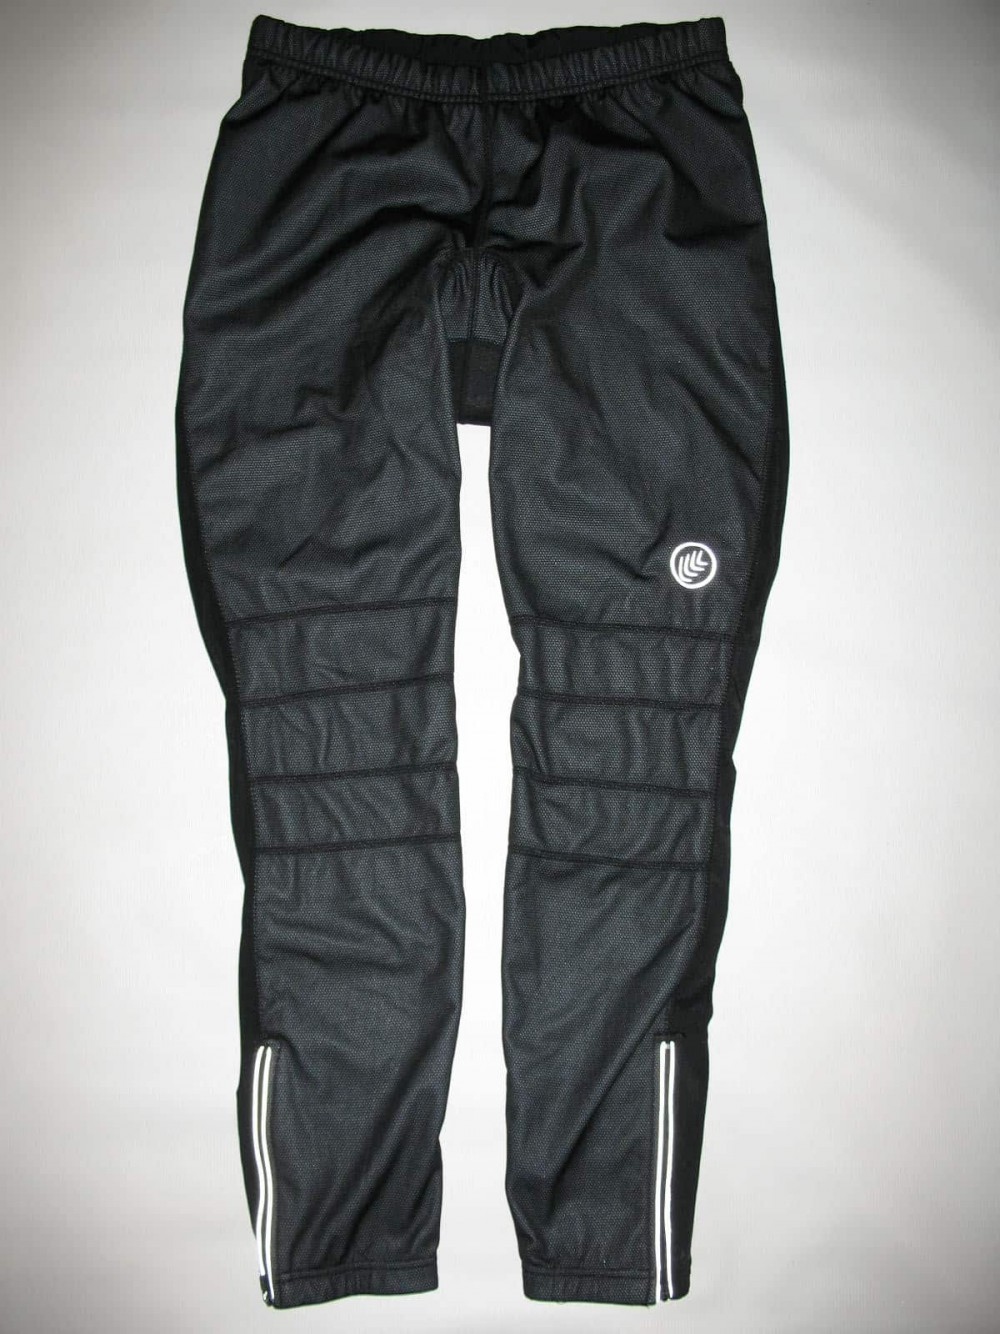 Велобрюки CRANE windstopper cycling pants (размер L) - 1